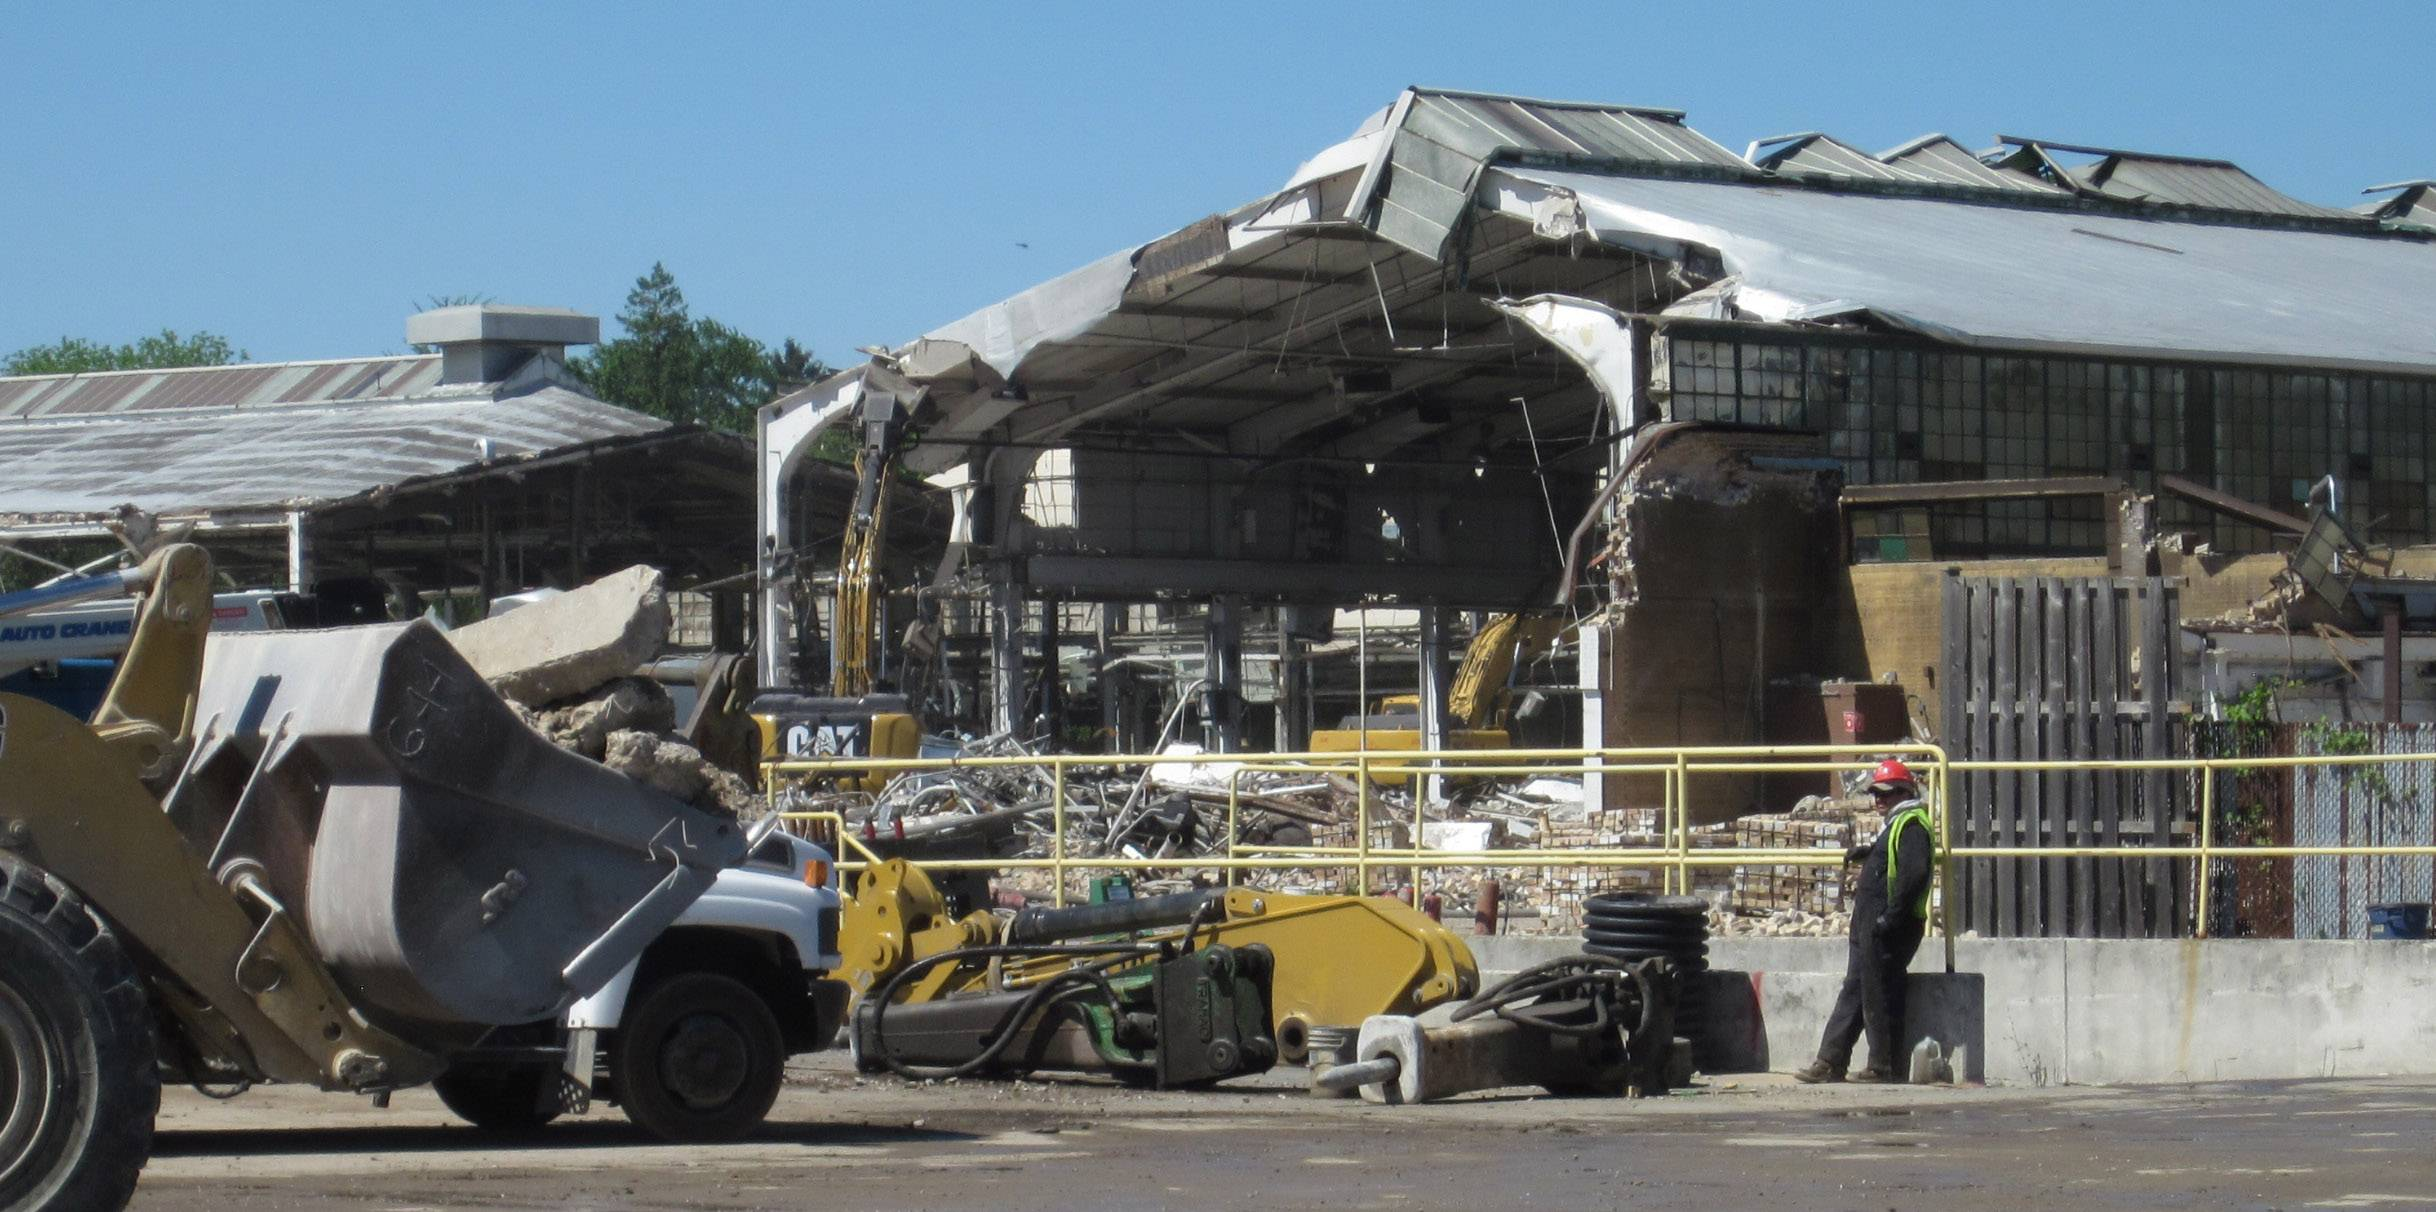 Crews continue the demolition of a portion of the former Frank G. Hough Co. in Libertyville. About 3,000 people once worked at the industrial campus making heavy equipment at what became an innovator in the field.